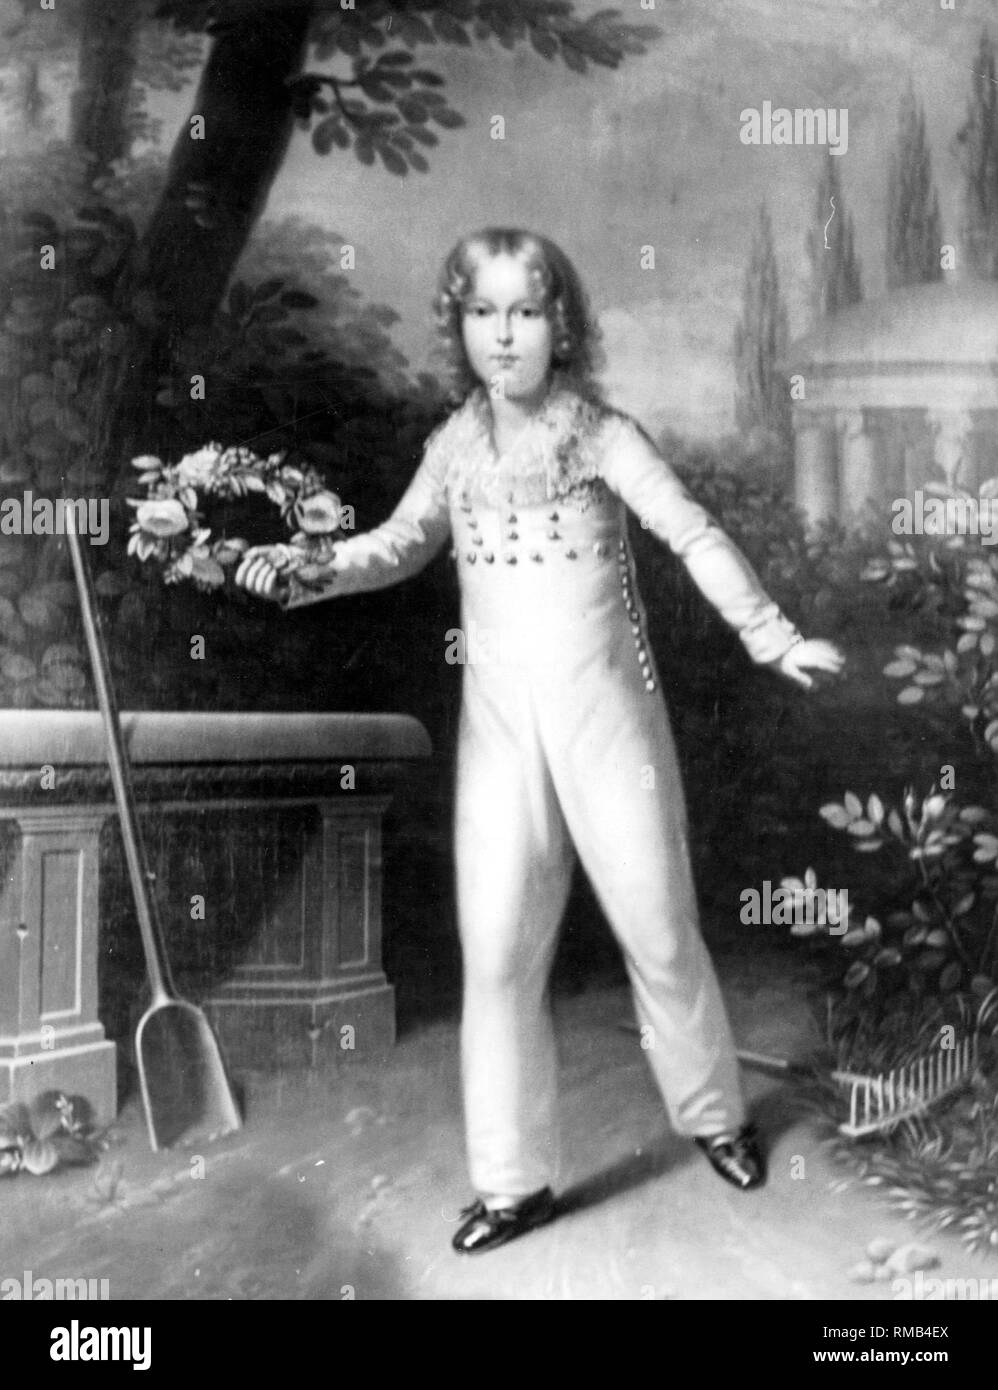 Napoleon, Duke of Reichstadt (as Emperor of the French Napoleon II), son of Napoleon I Bonaparte and Archduchess Marie Louise of France. After a painting in Schoenbrunn. Stock Photo